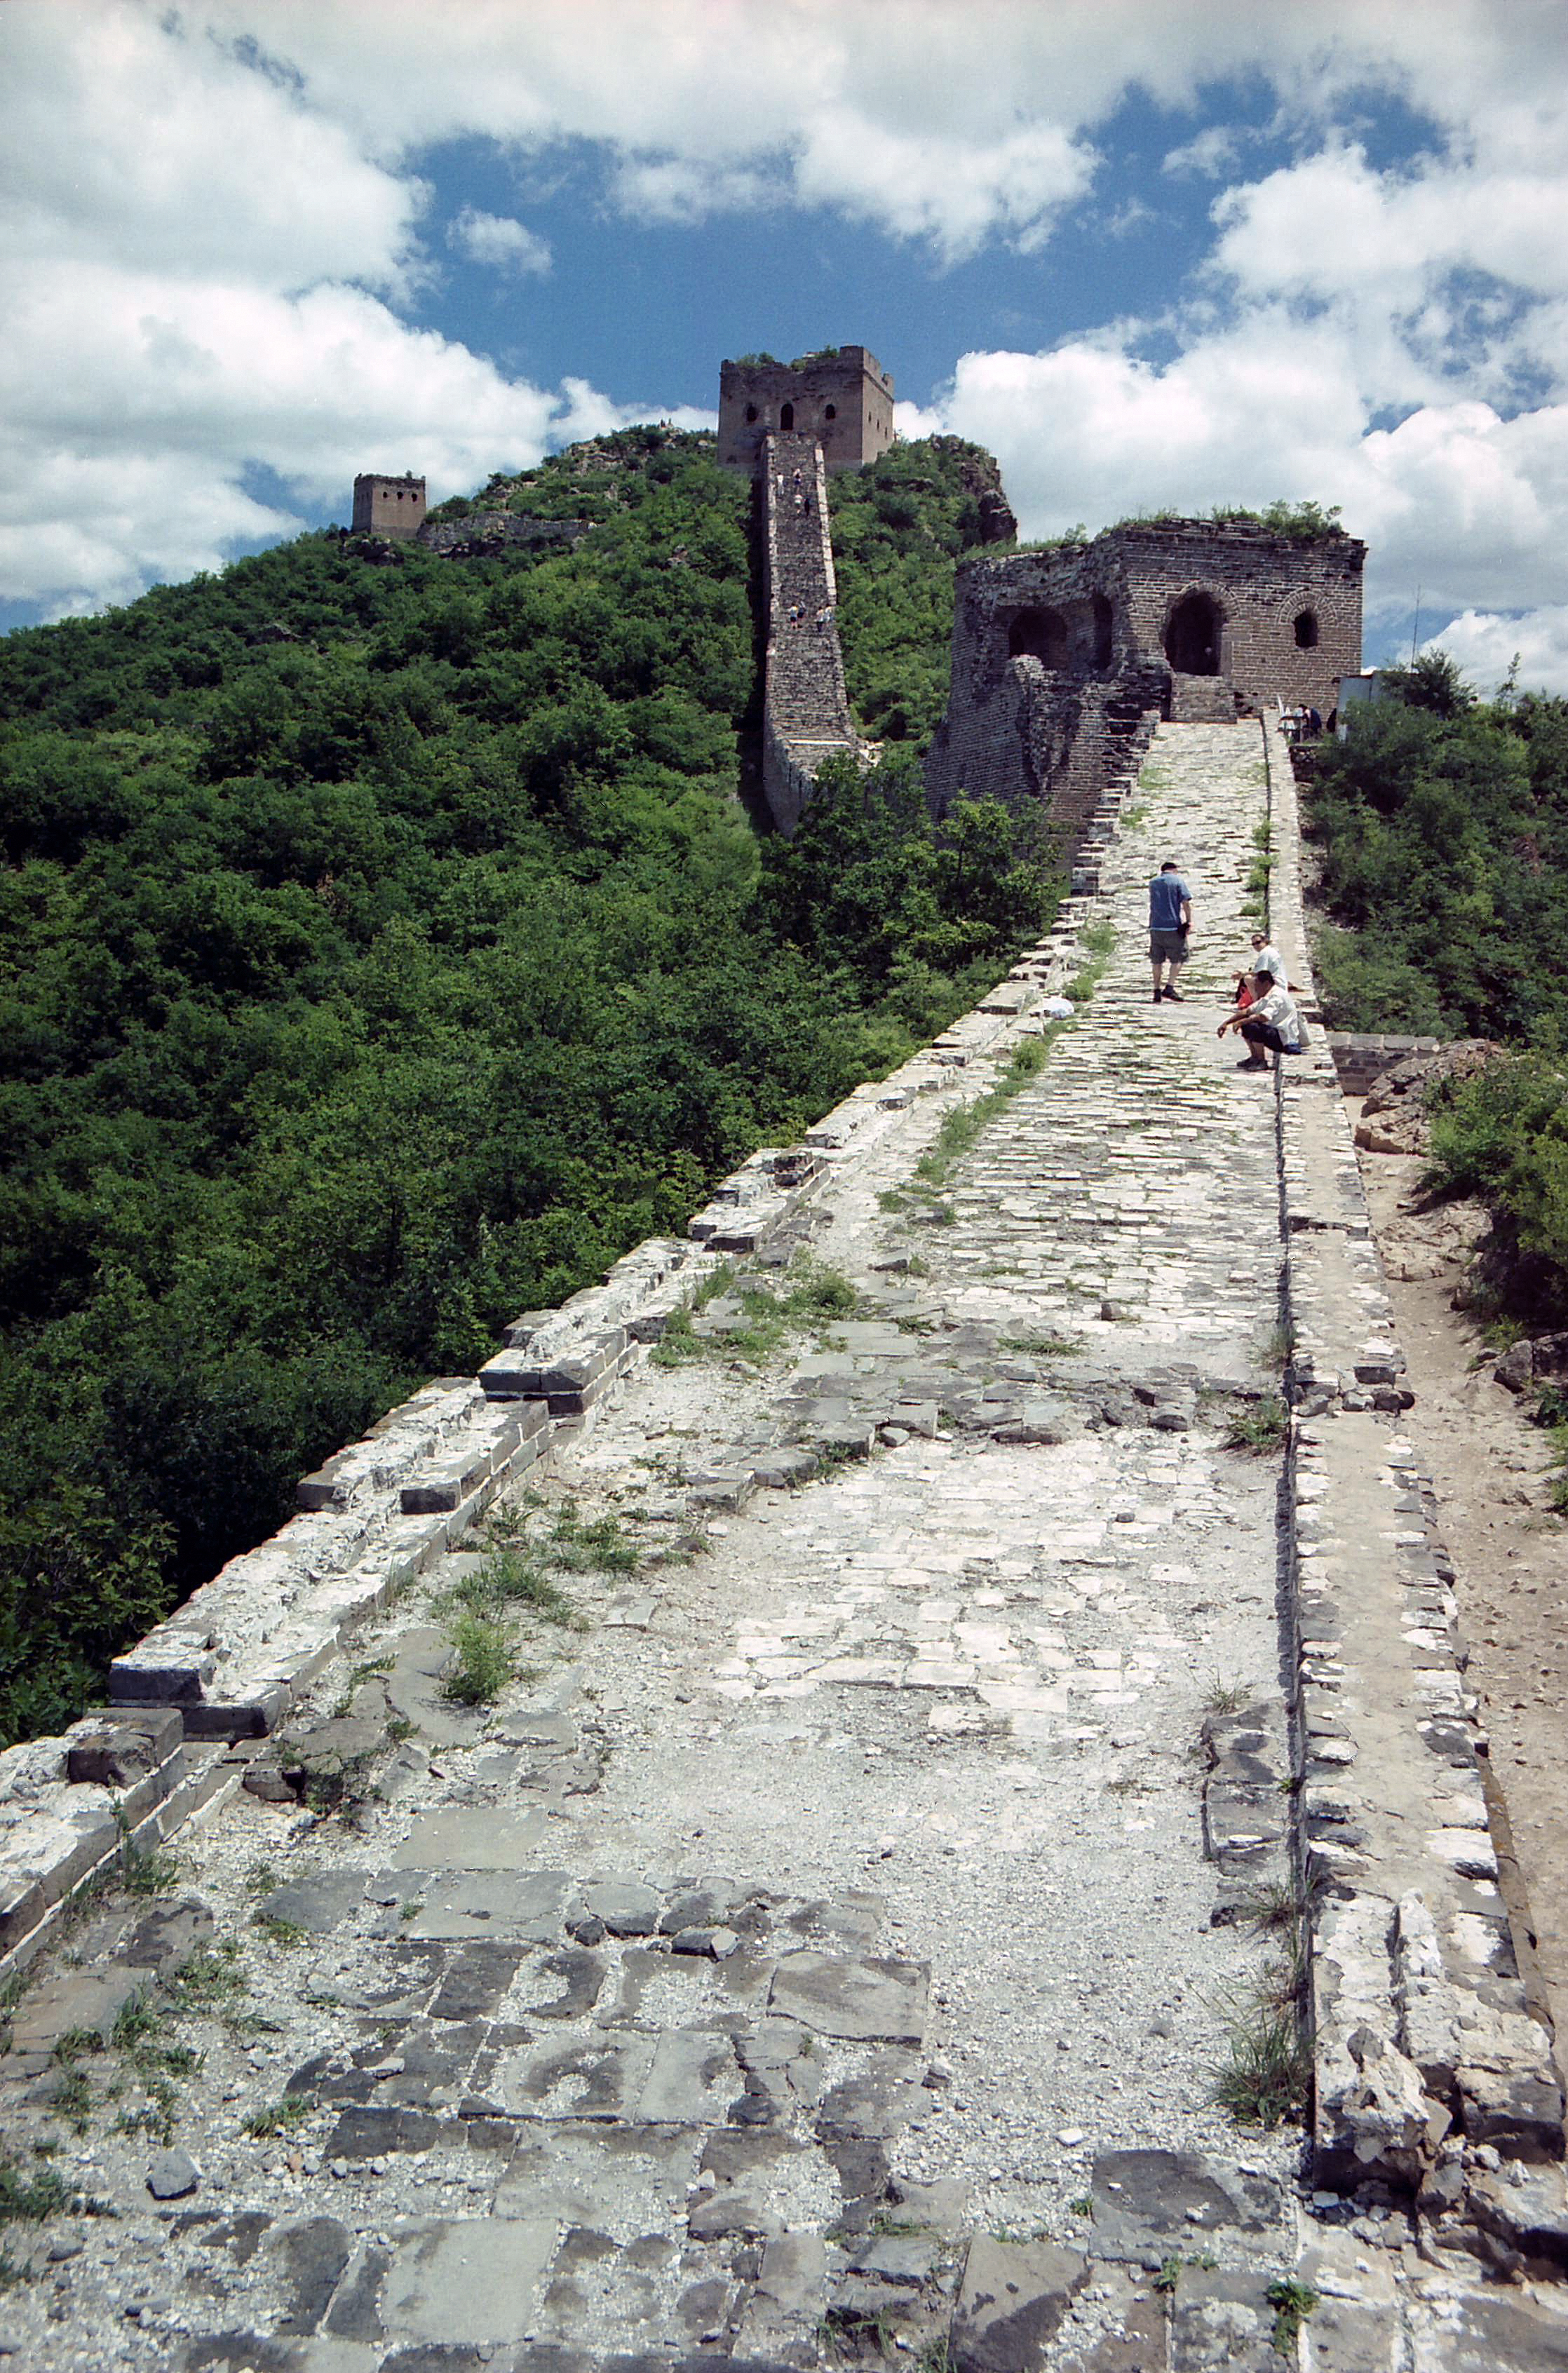 Great Wall of China, Beijing China.jpg - Great Wall of China